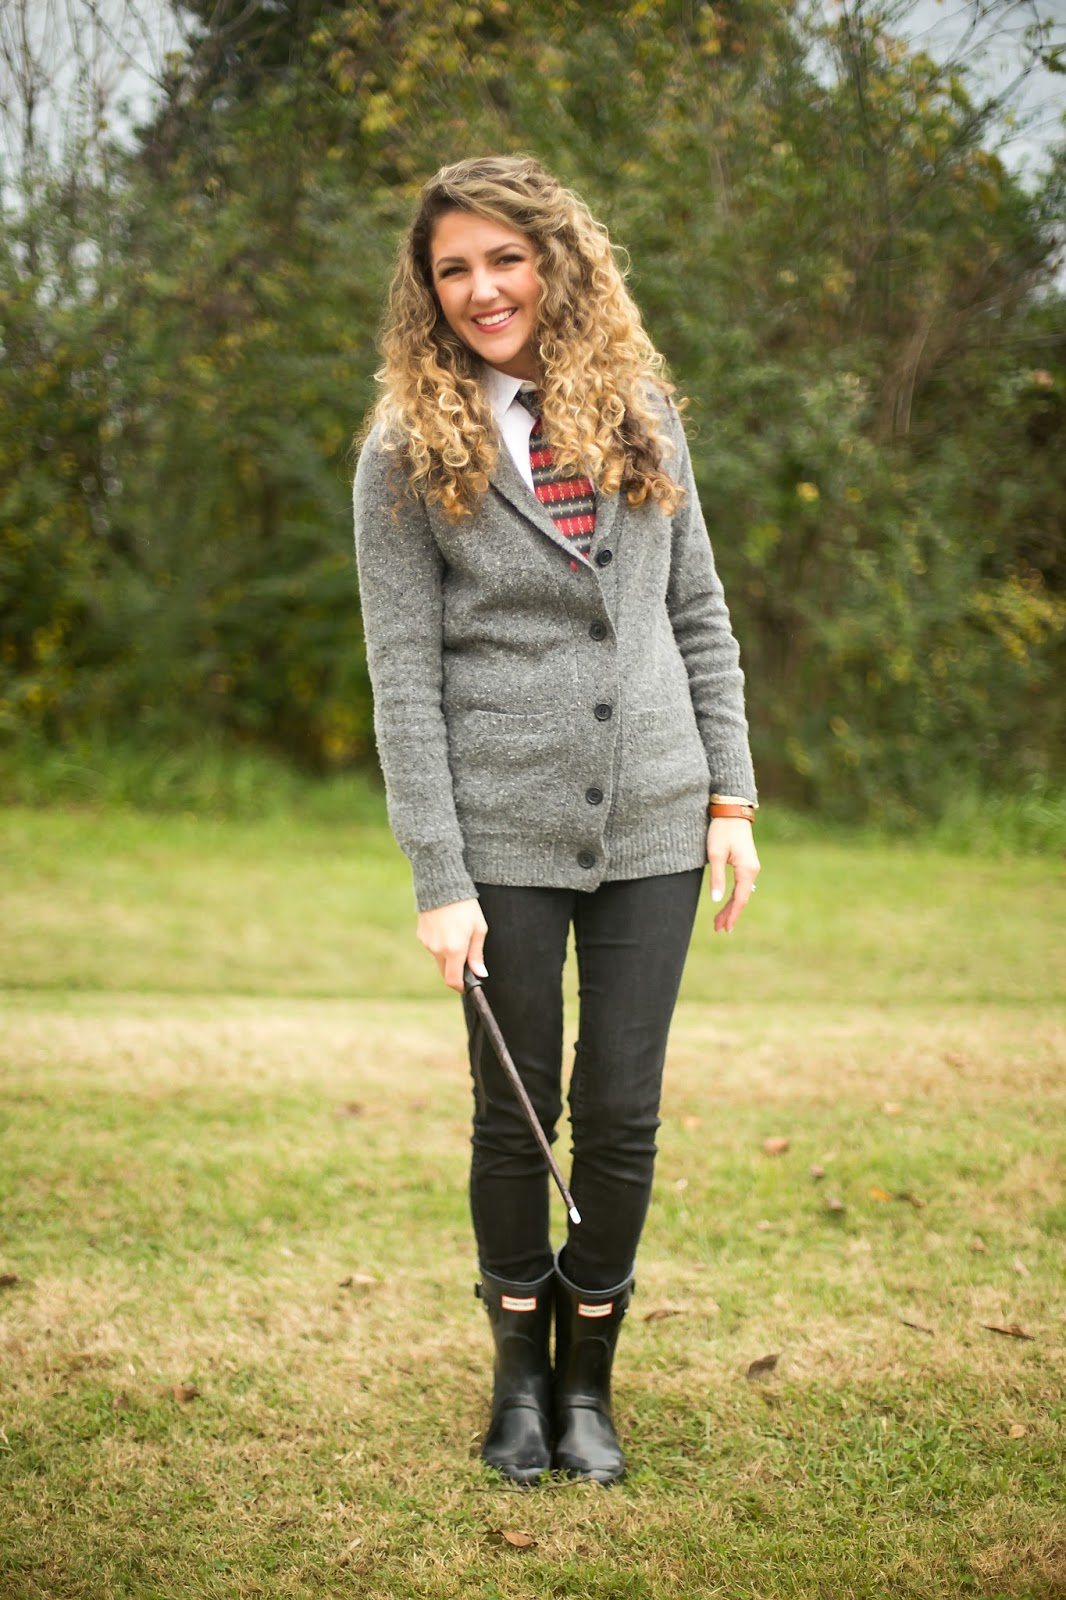 Costume Halloween Hermione.Quick And Easy Hermione Granger Halloween Costume Shaw Avenue